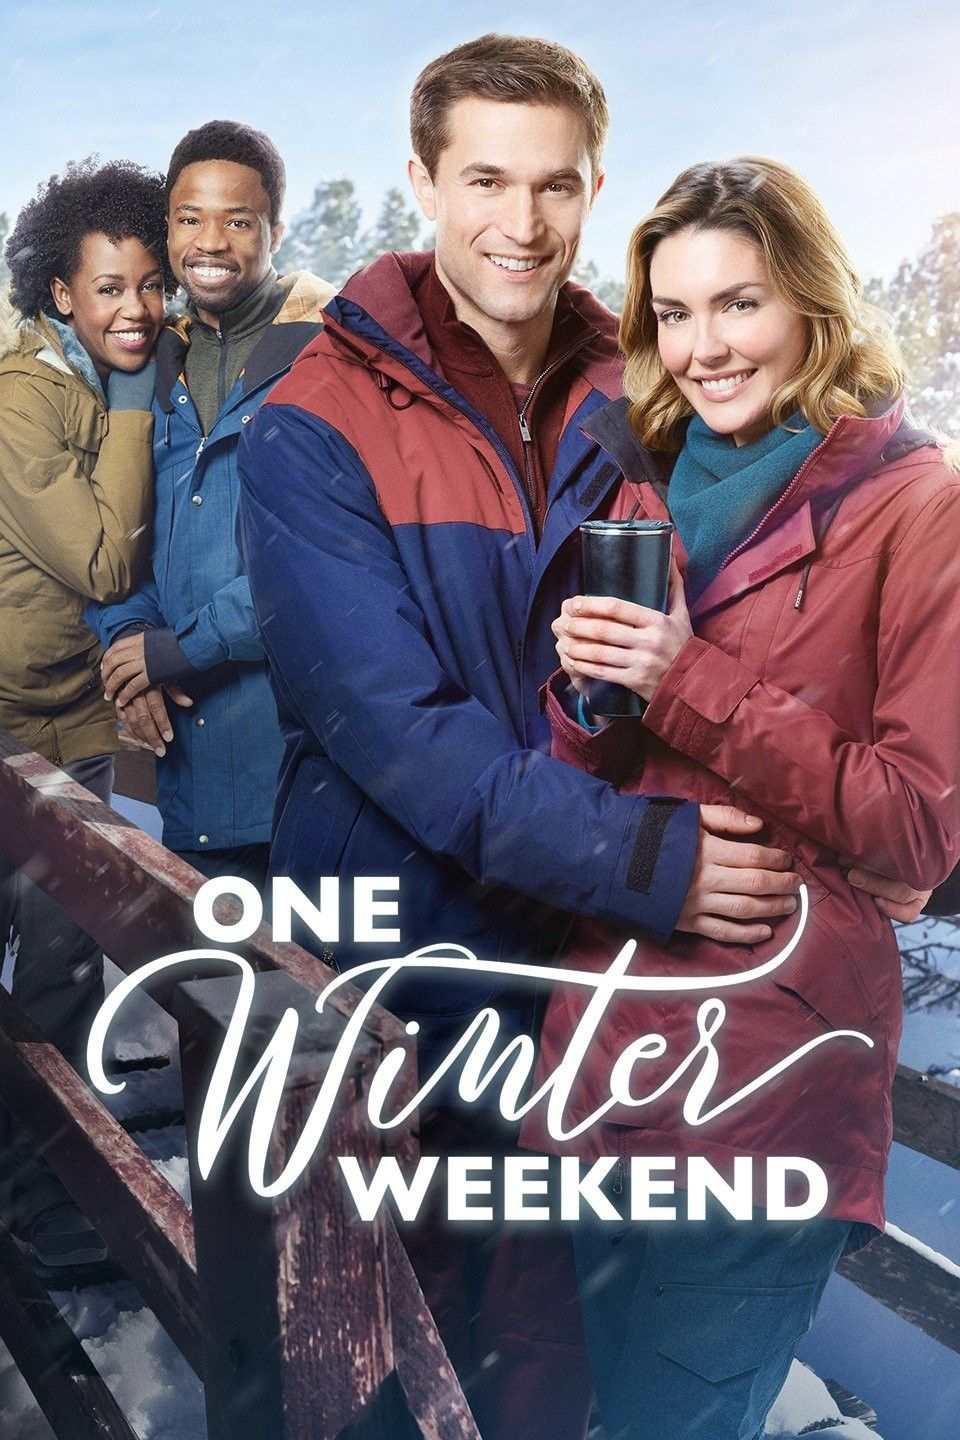 What Men Want Vostfr : vostfr, Movie., Involved, Couples., Women, Their, Weekend, Away., Really, New…, Movies,, Streaming